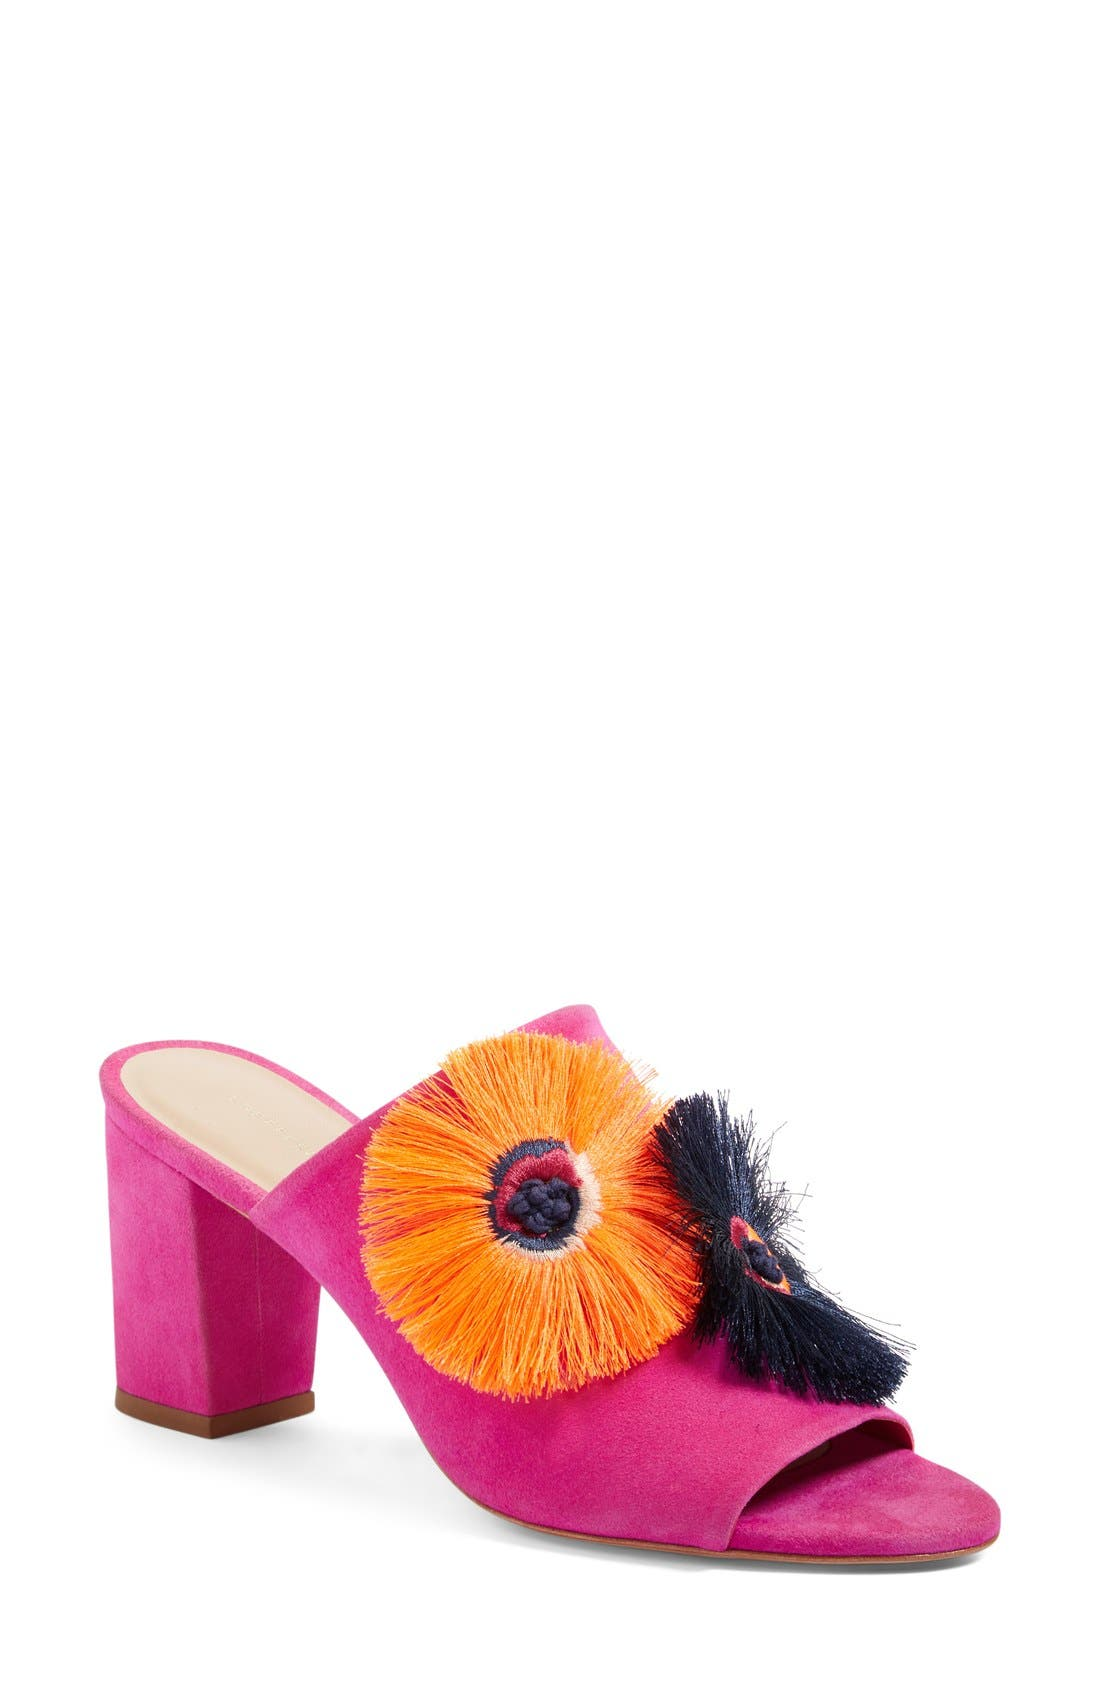 Alternate Image 1 Selected - Loeffler Randall Flower Mule (Women)